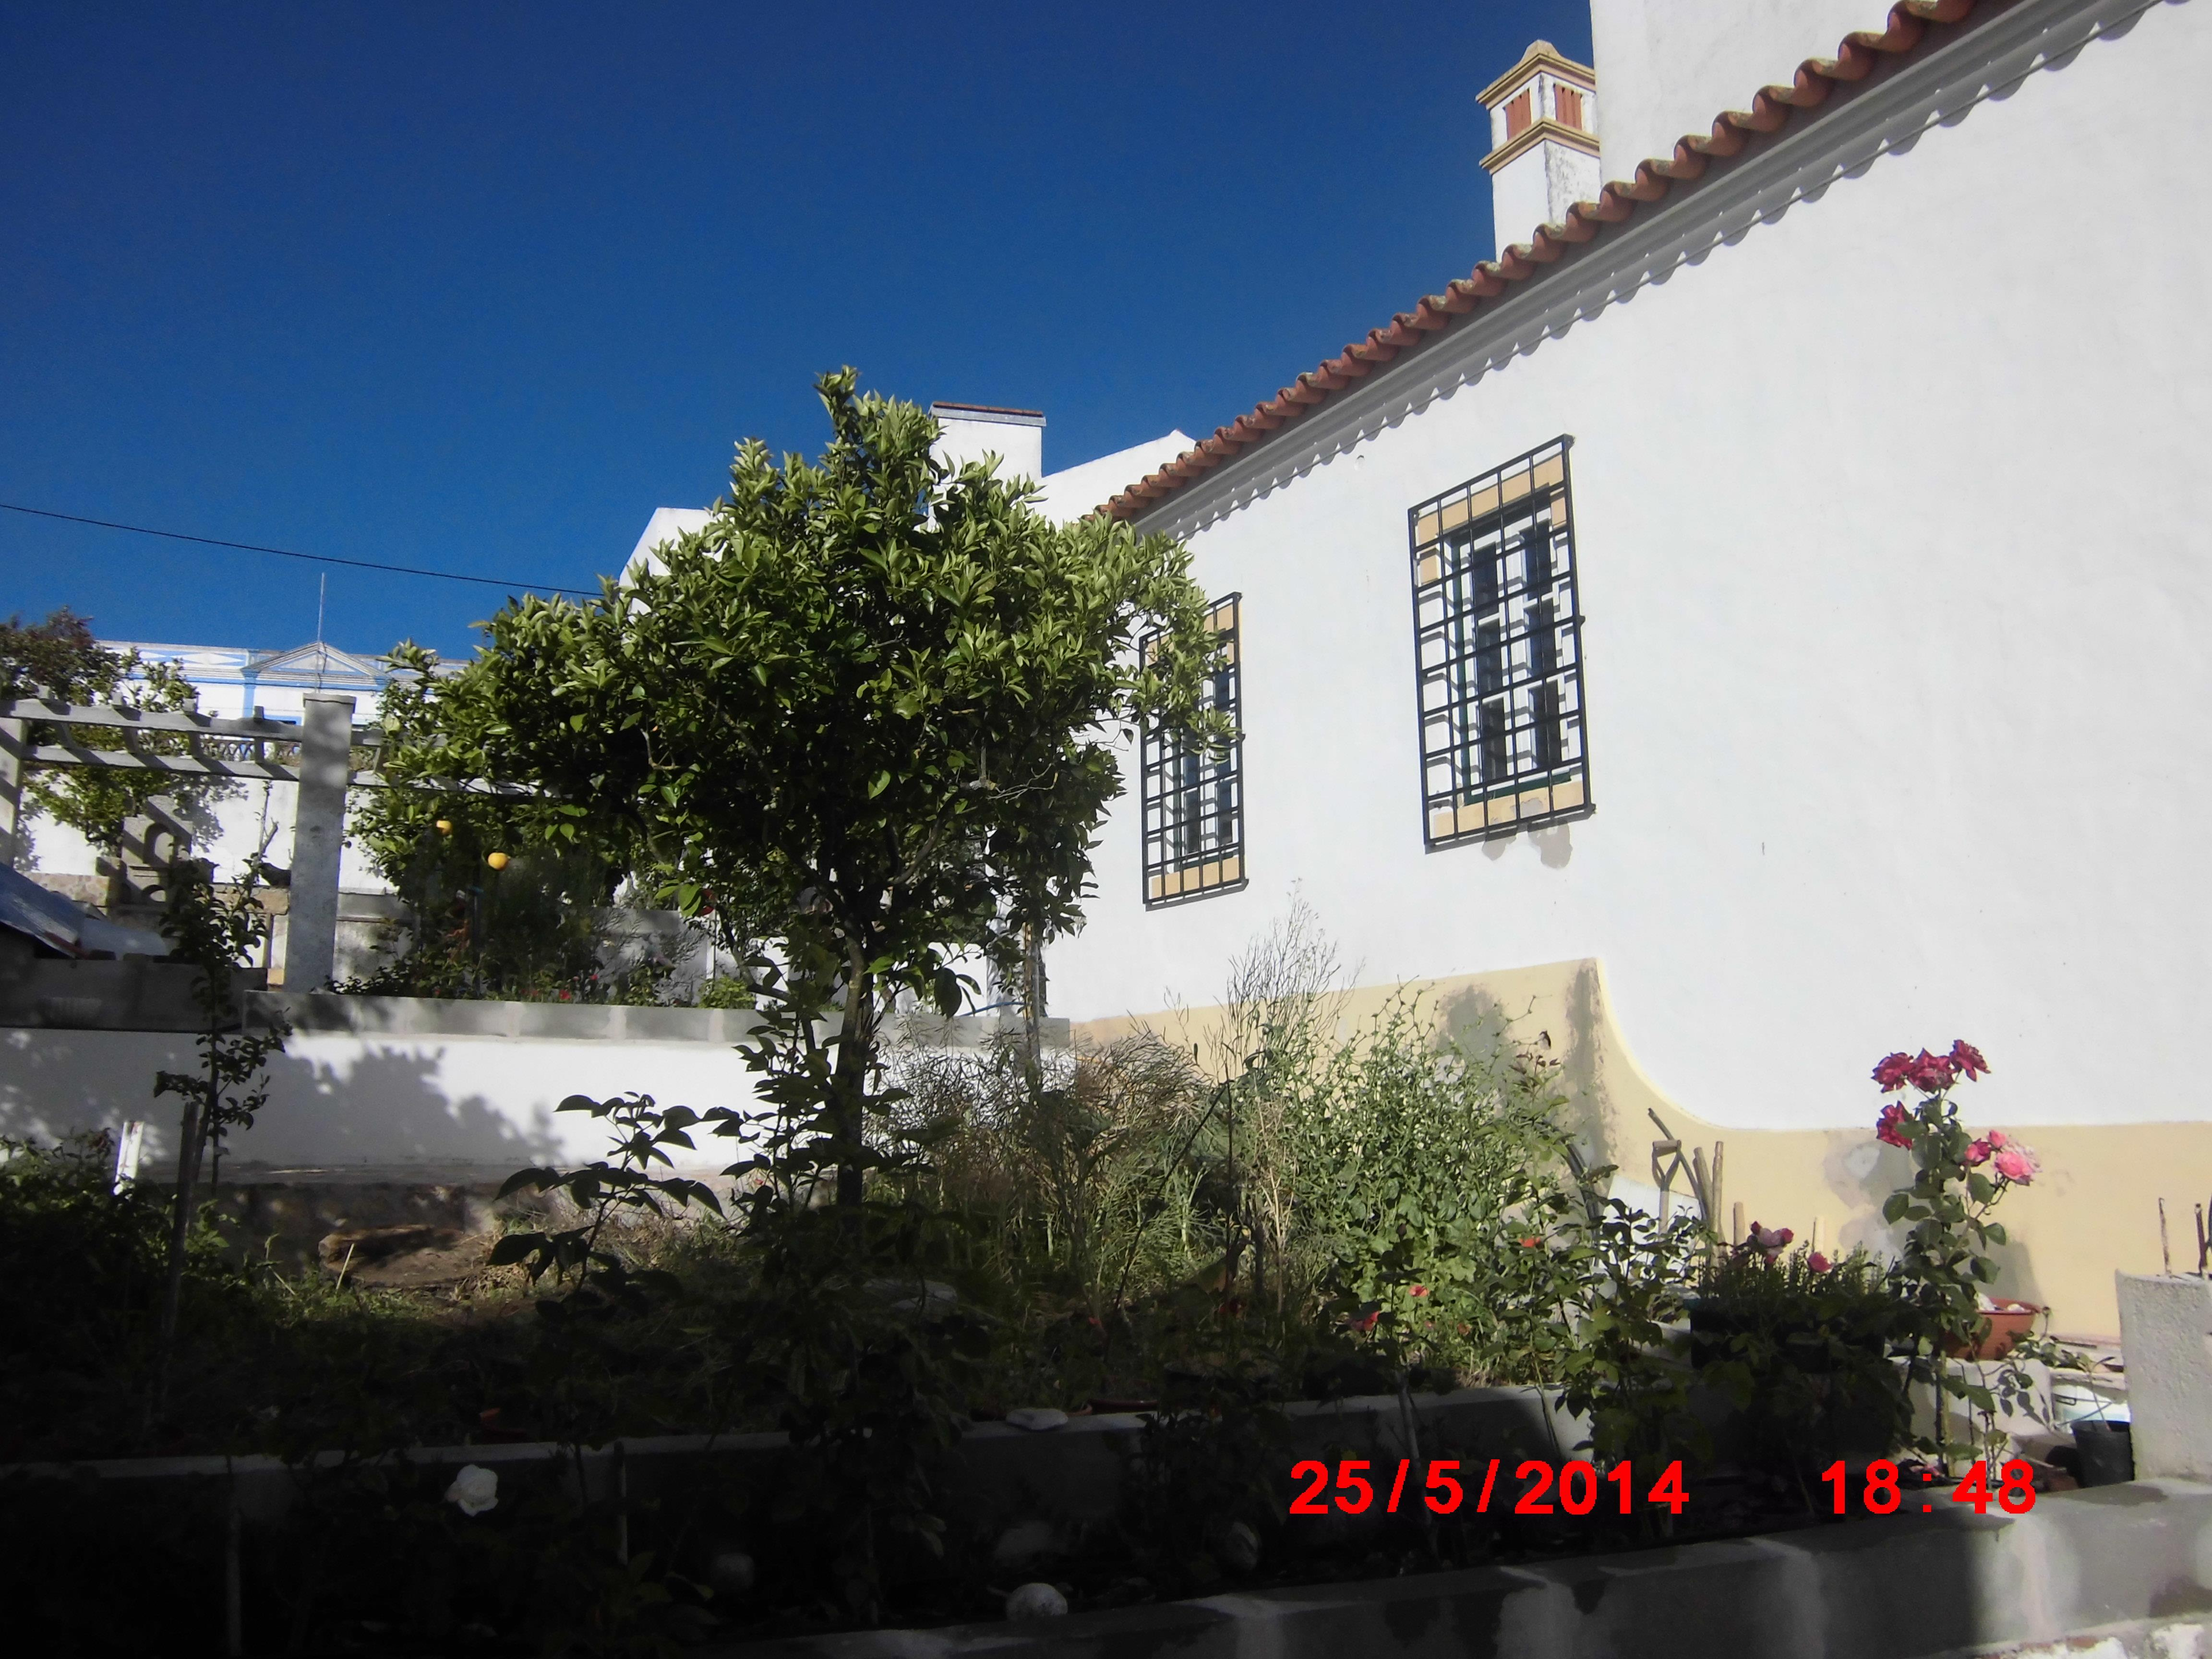 Casa Unifamiliar por un Venta en Apartment Floor Dwelling, 4 bedrooms, for Sale Arraiolos, Evora, 7040-060 Portugal